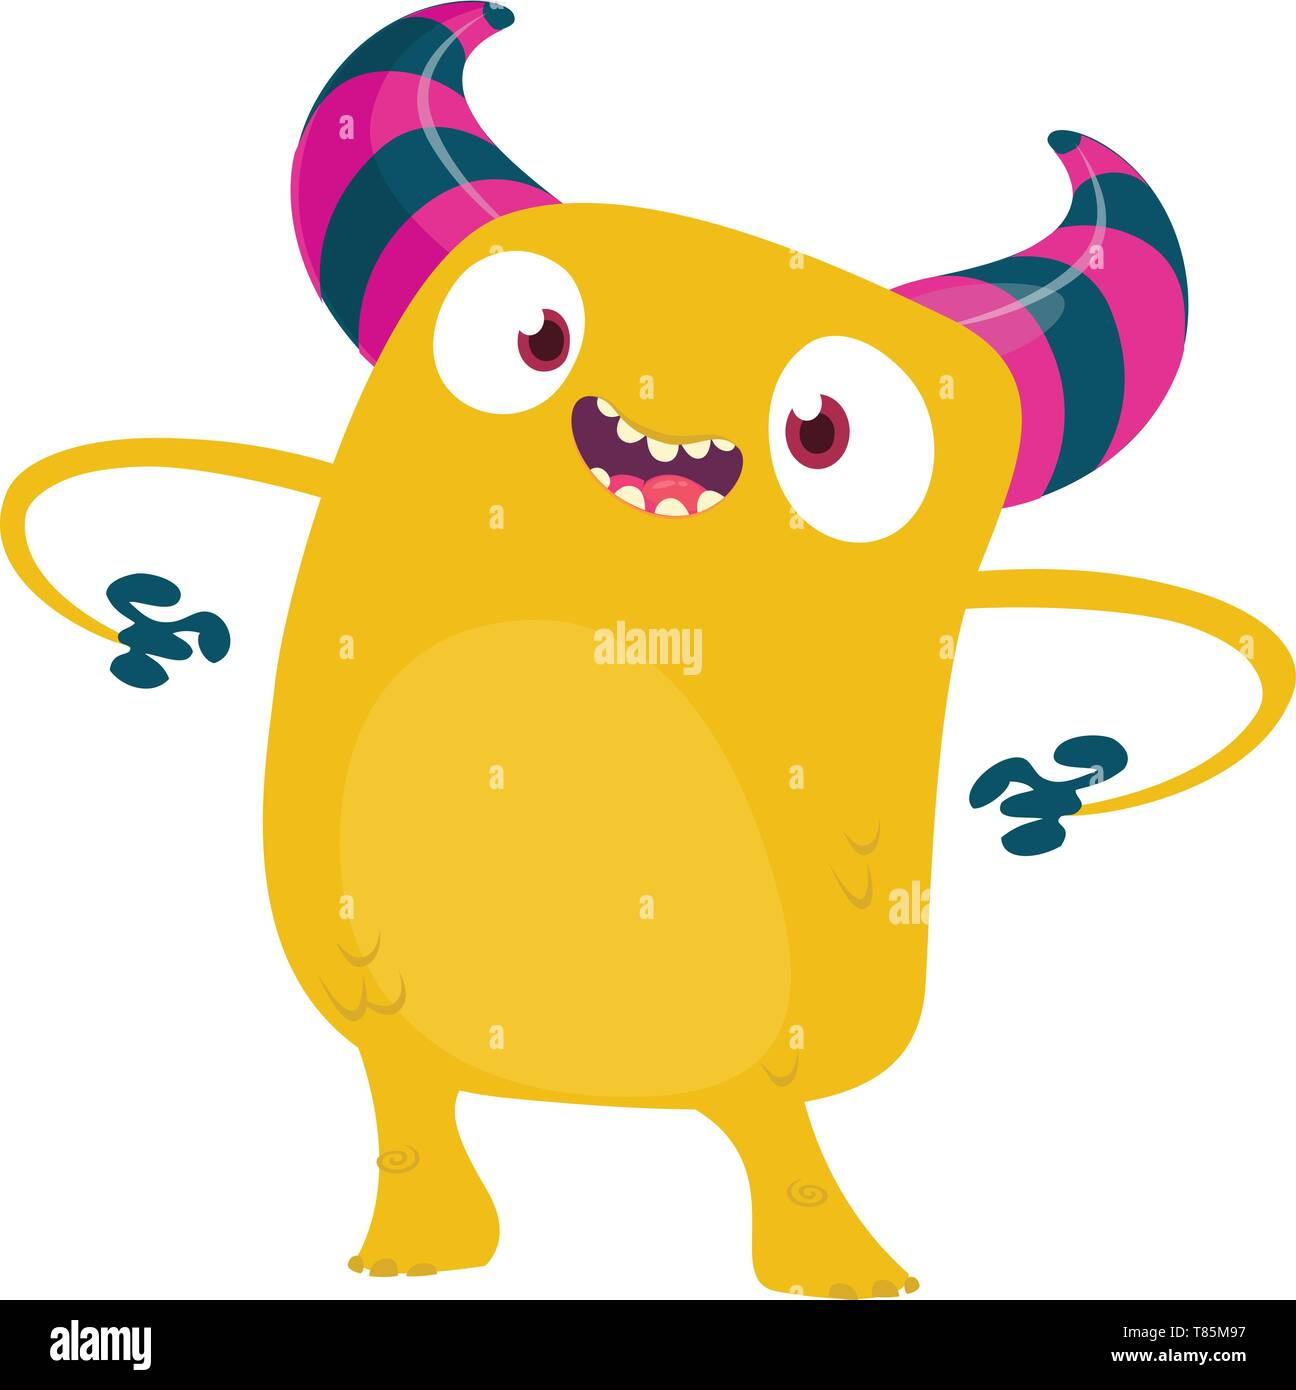 Cartoon Halloween Scary Monster. Vector yellow monster character illustration. - Stock Image